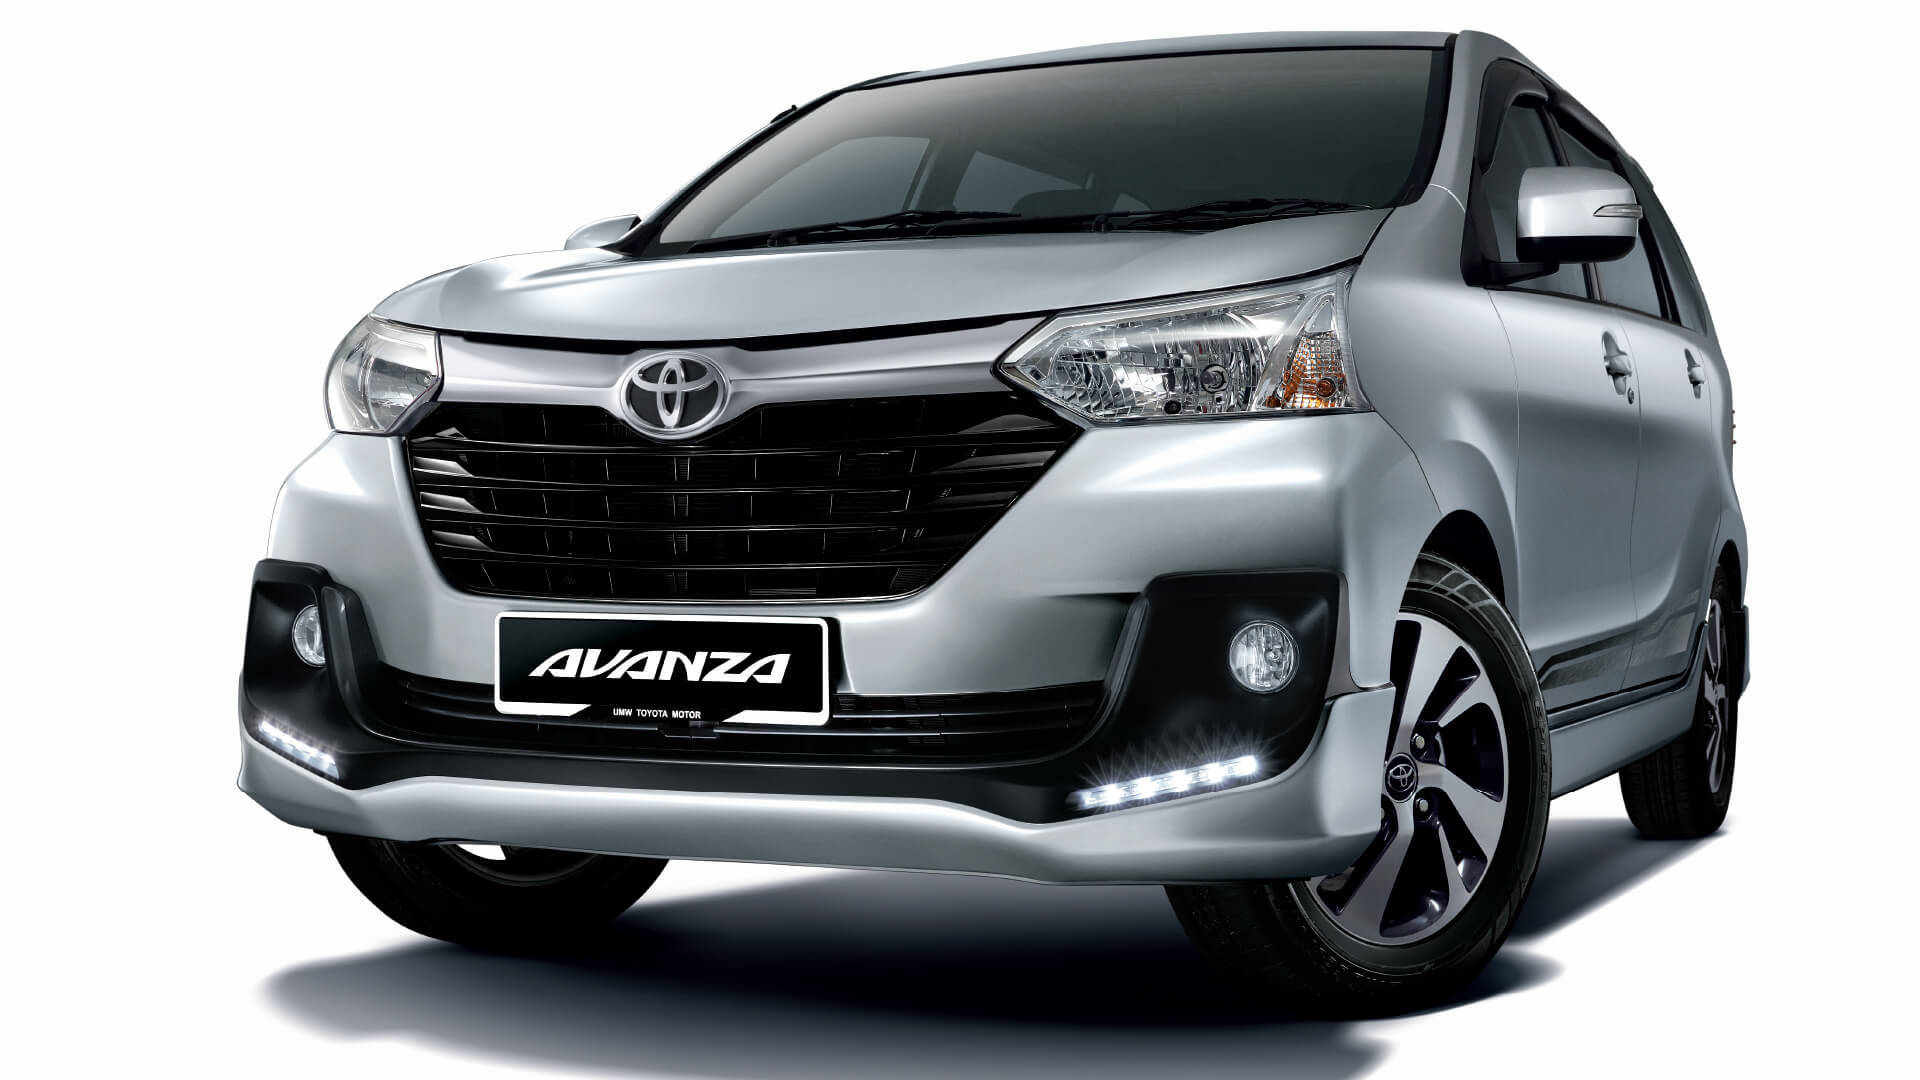 spesifikasi grand new veloz 1.5 all kijang innova 2.0 g m/t toyota malaysia avanza photos